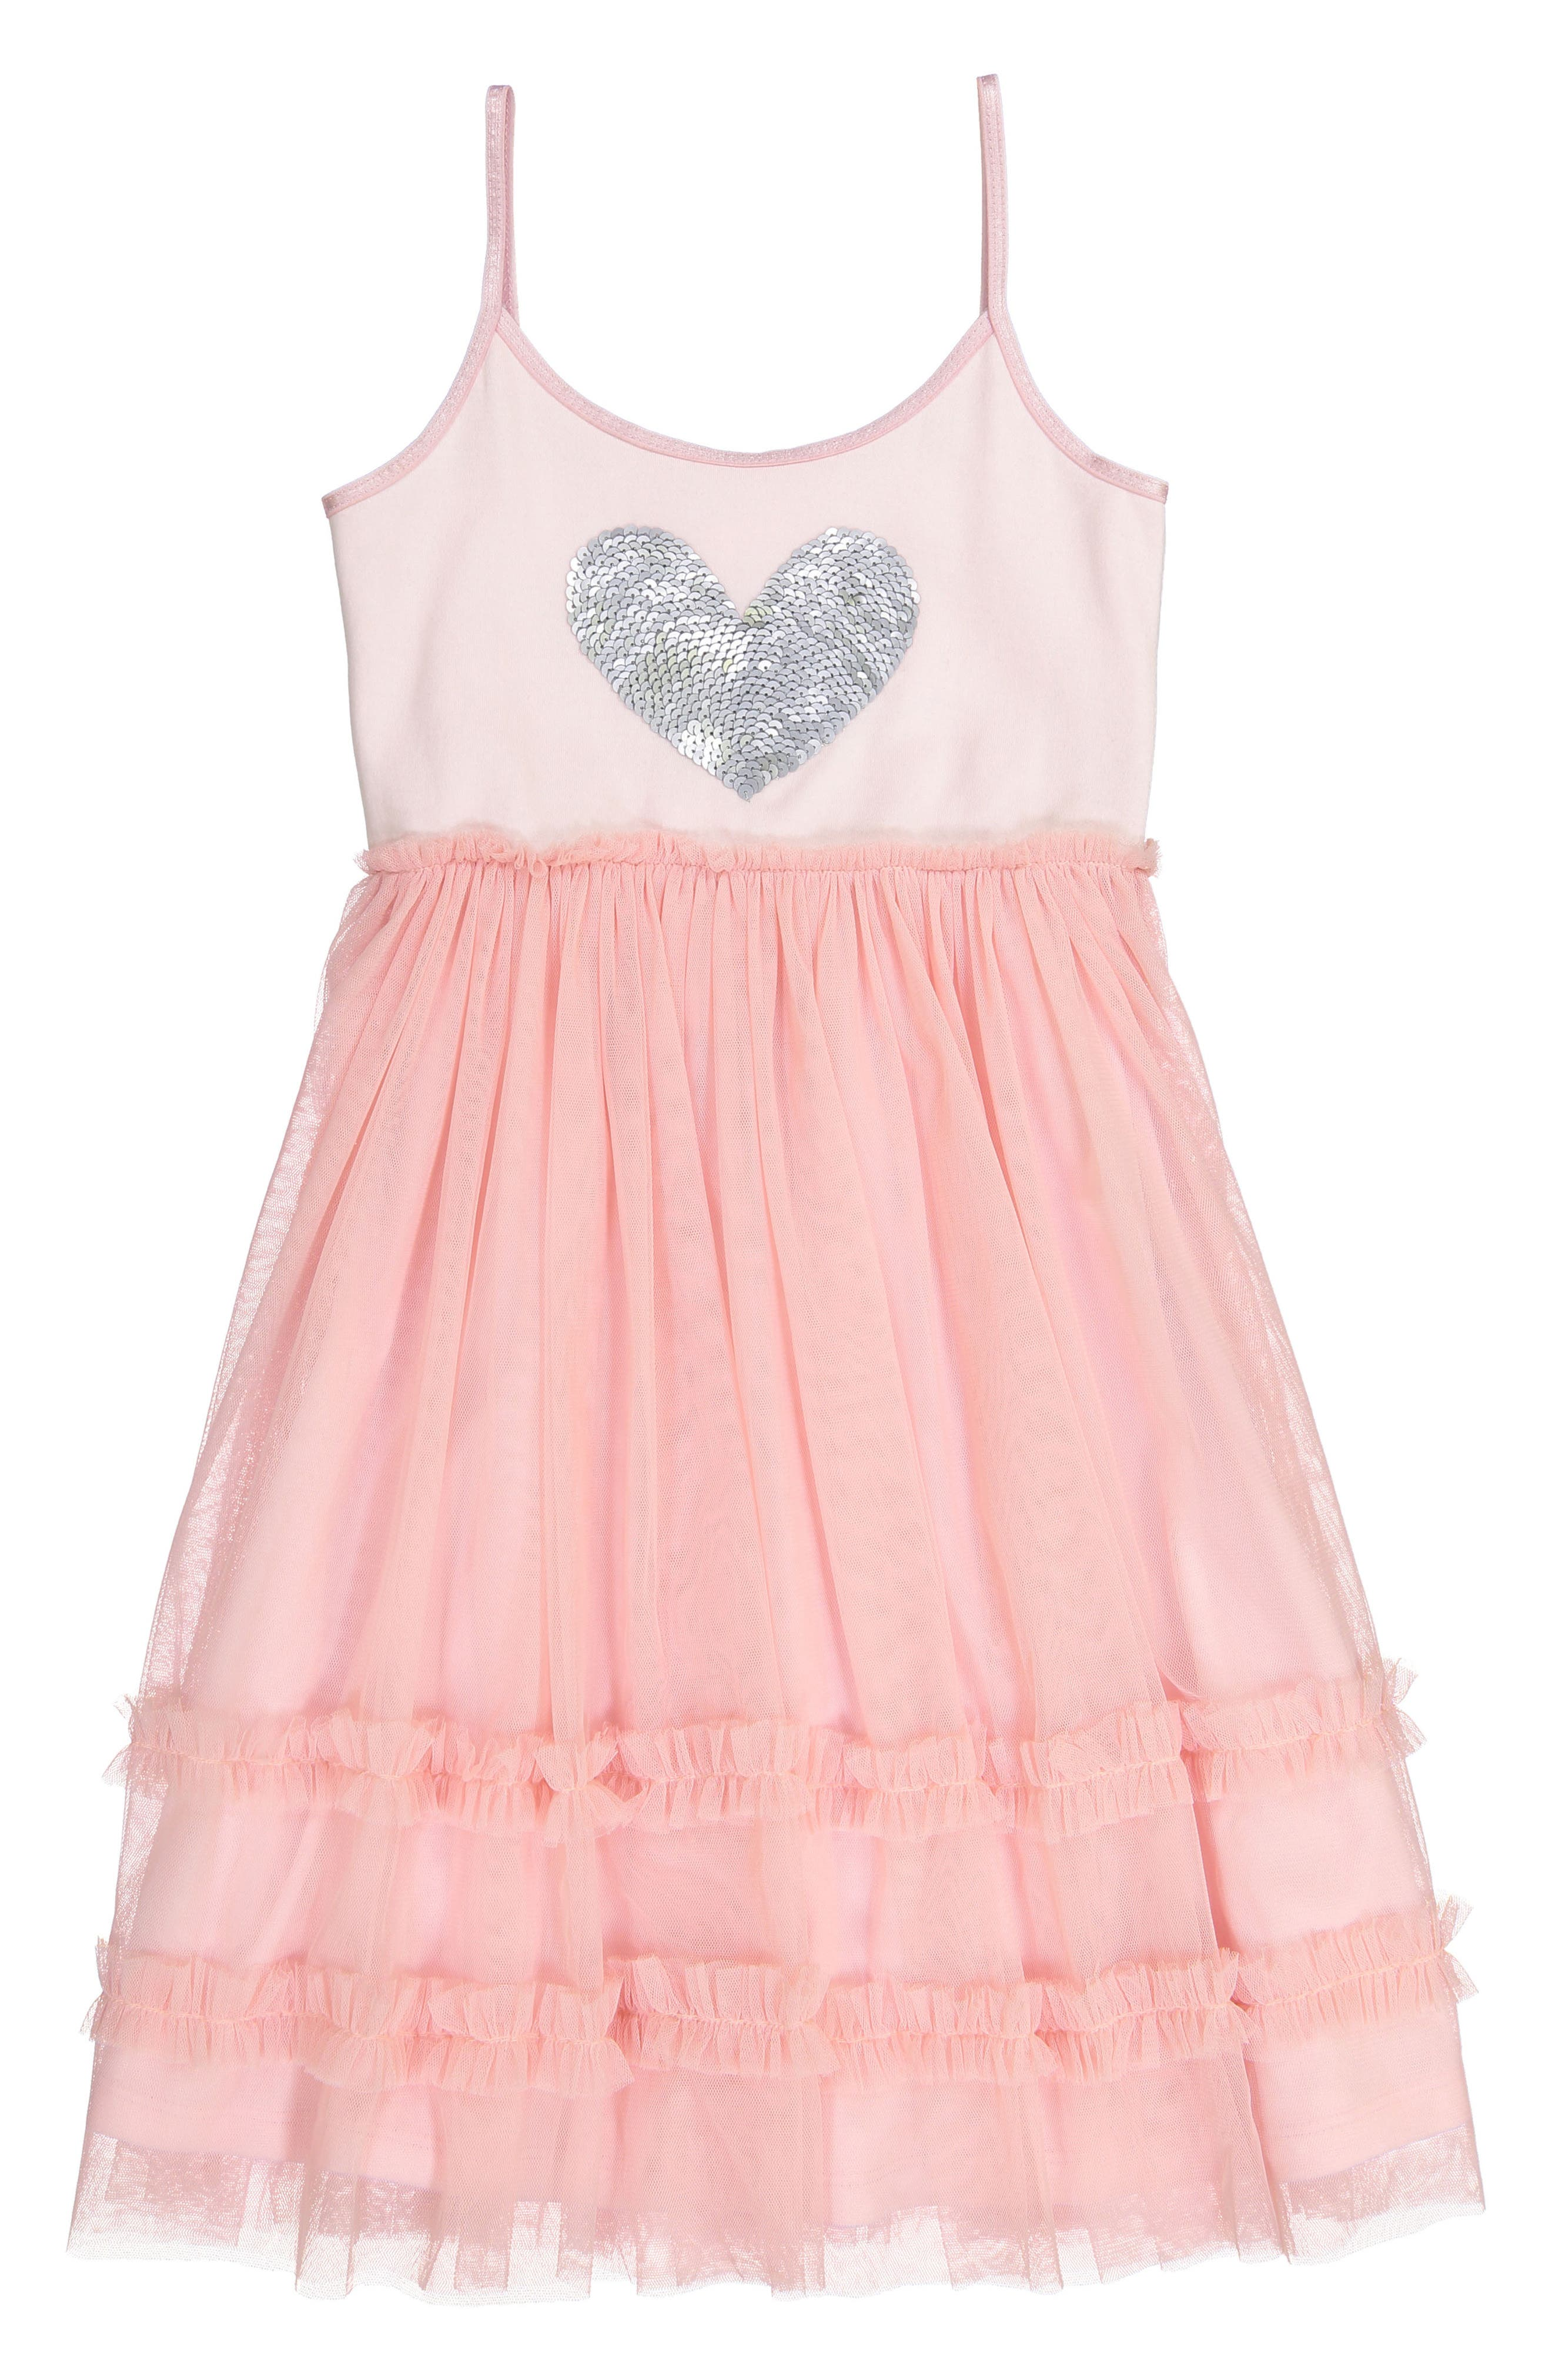 Sequin Heart Dress with Tulle Skirt,                             Main thumbnail 1, color,                             Blush